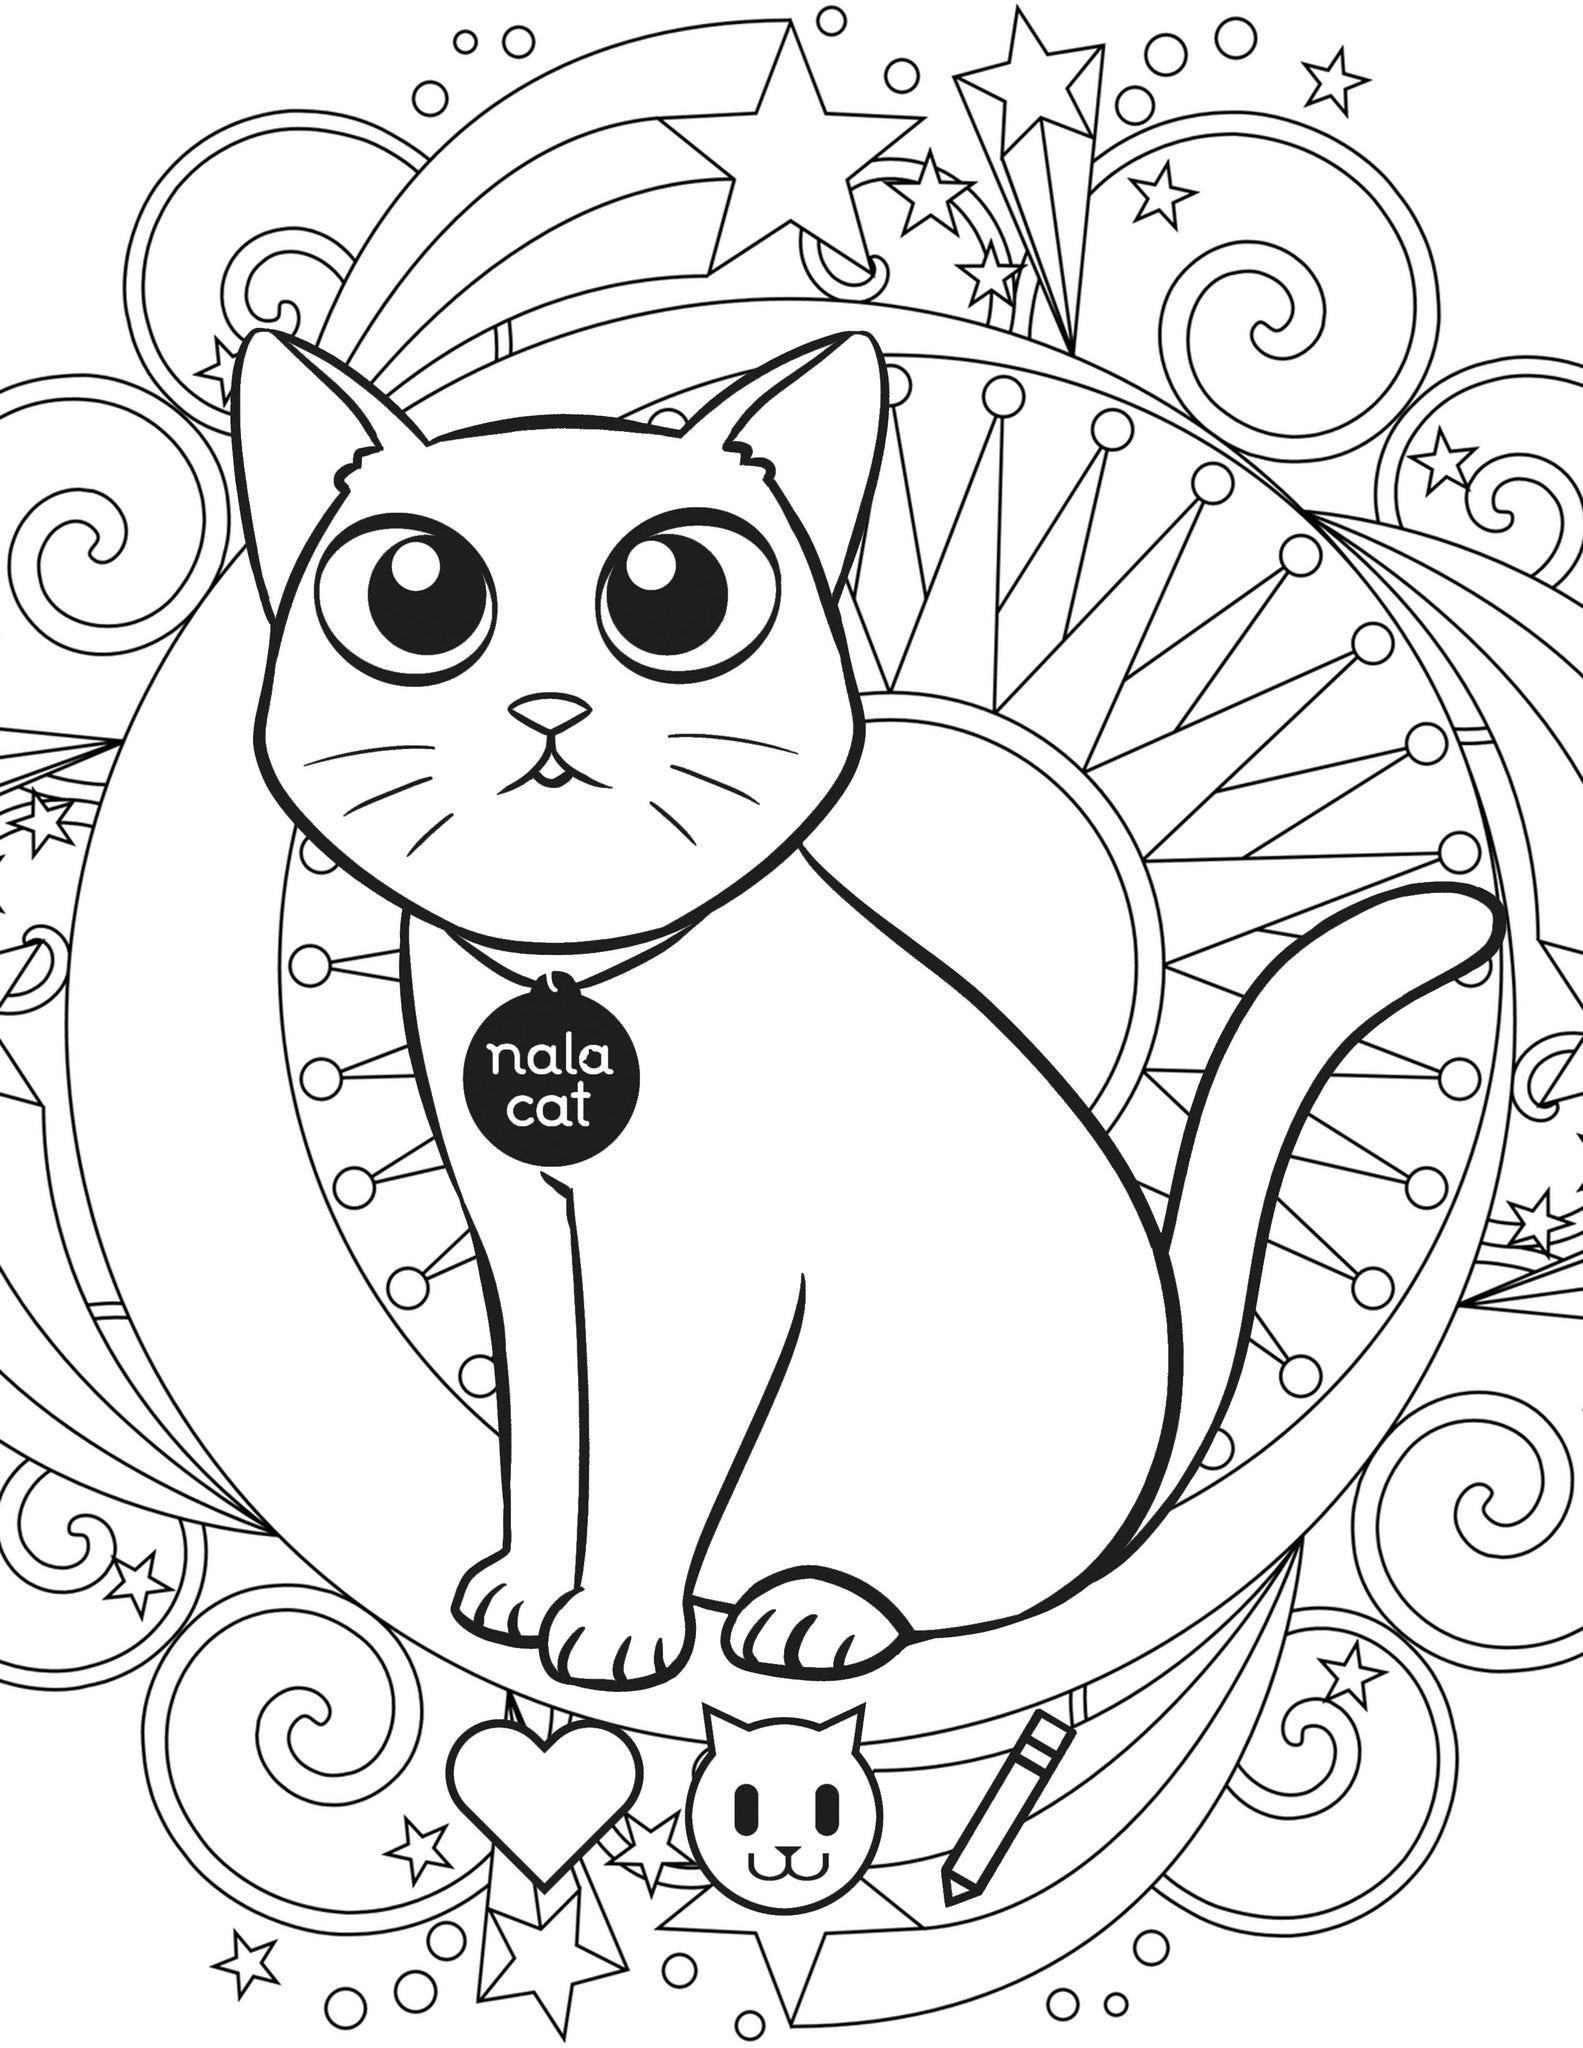 Nala Cat Coloring Book Dabel Brothers